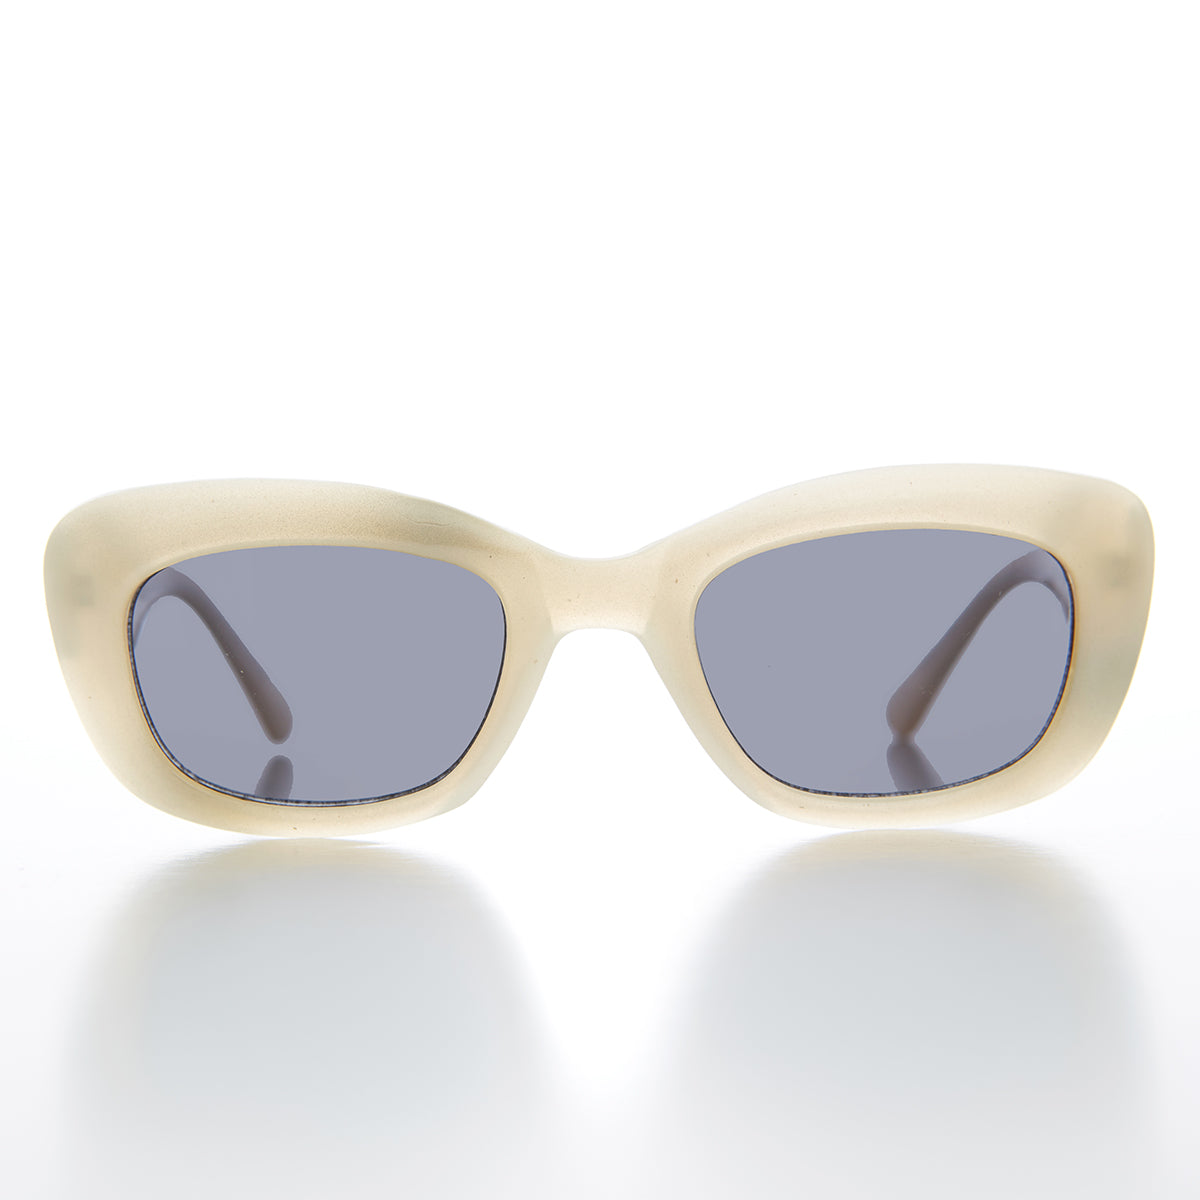 Mod Rectangular Cat Eye Vintage Sunglass